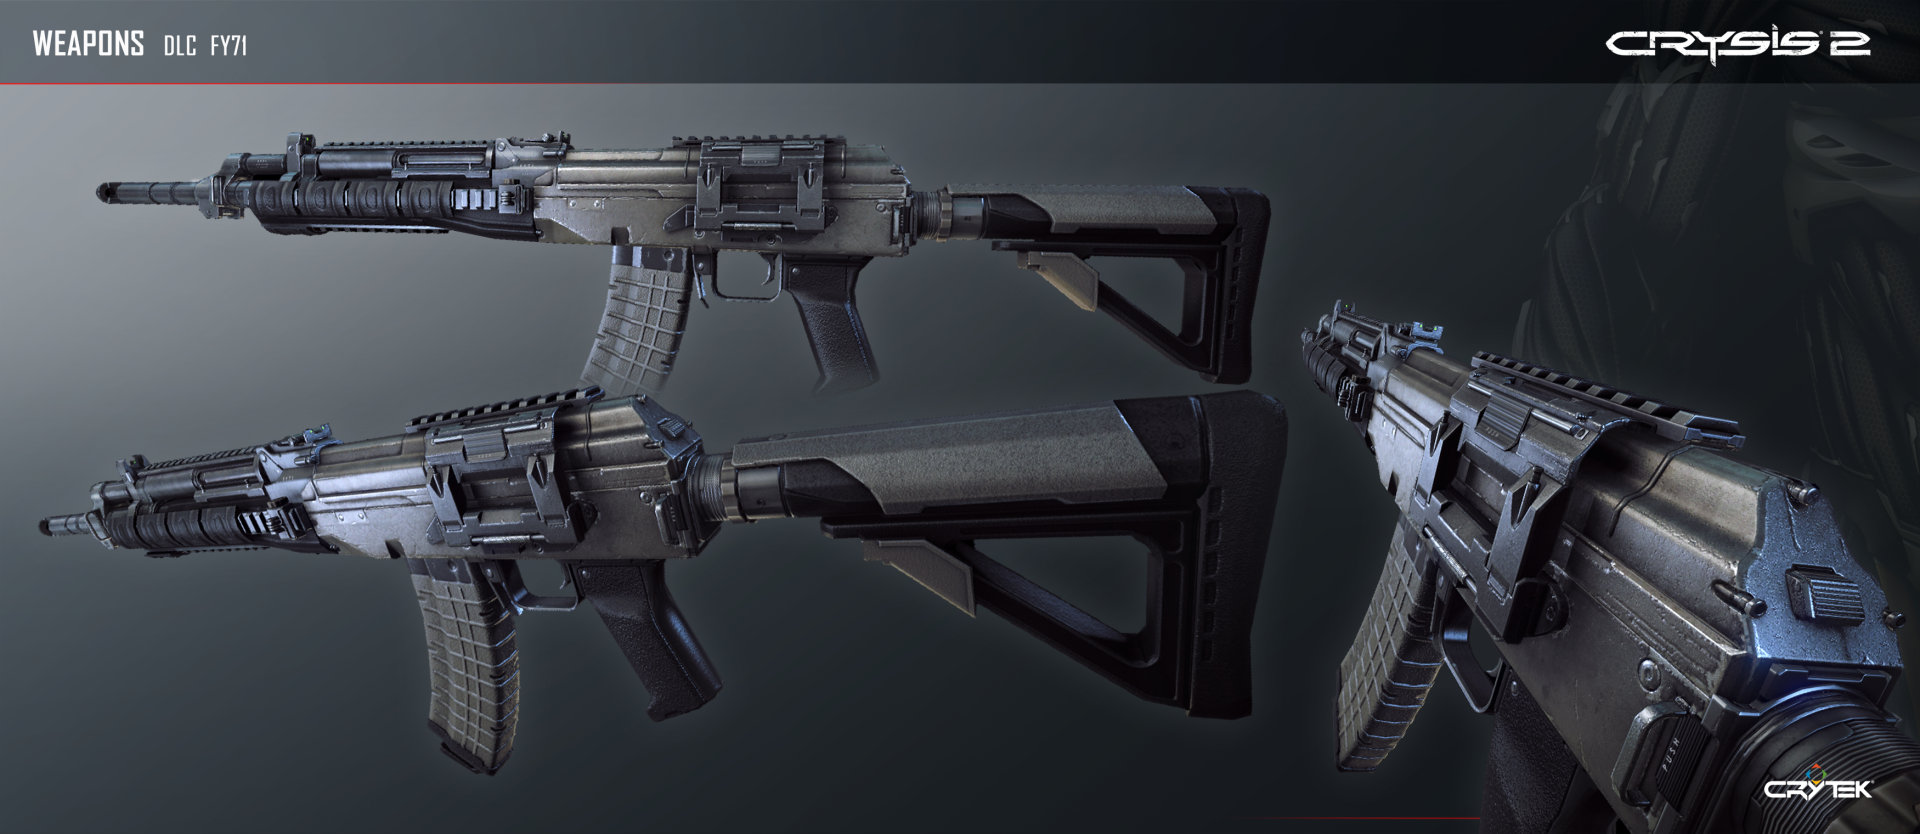 Crysis 2 FY71 Assault Rifle by Scarlighter